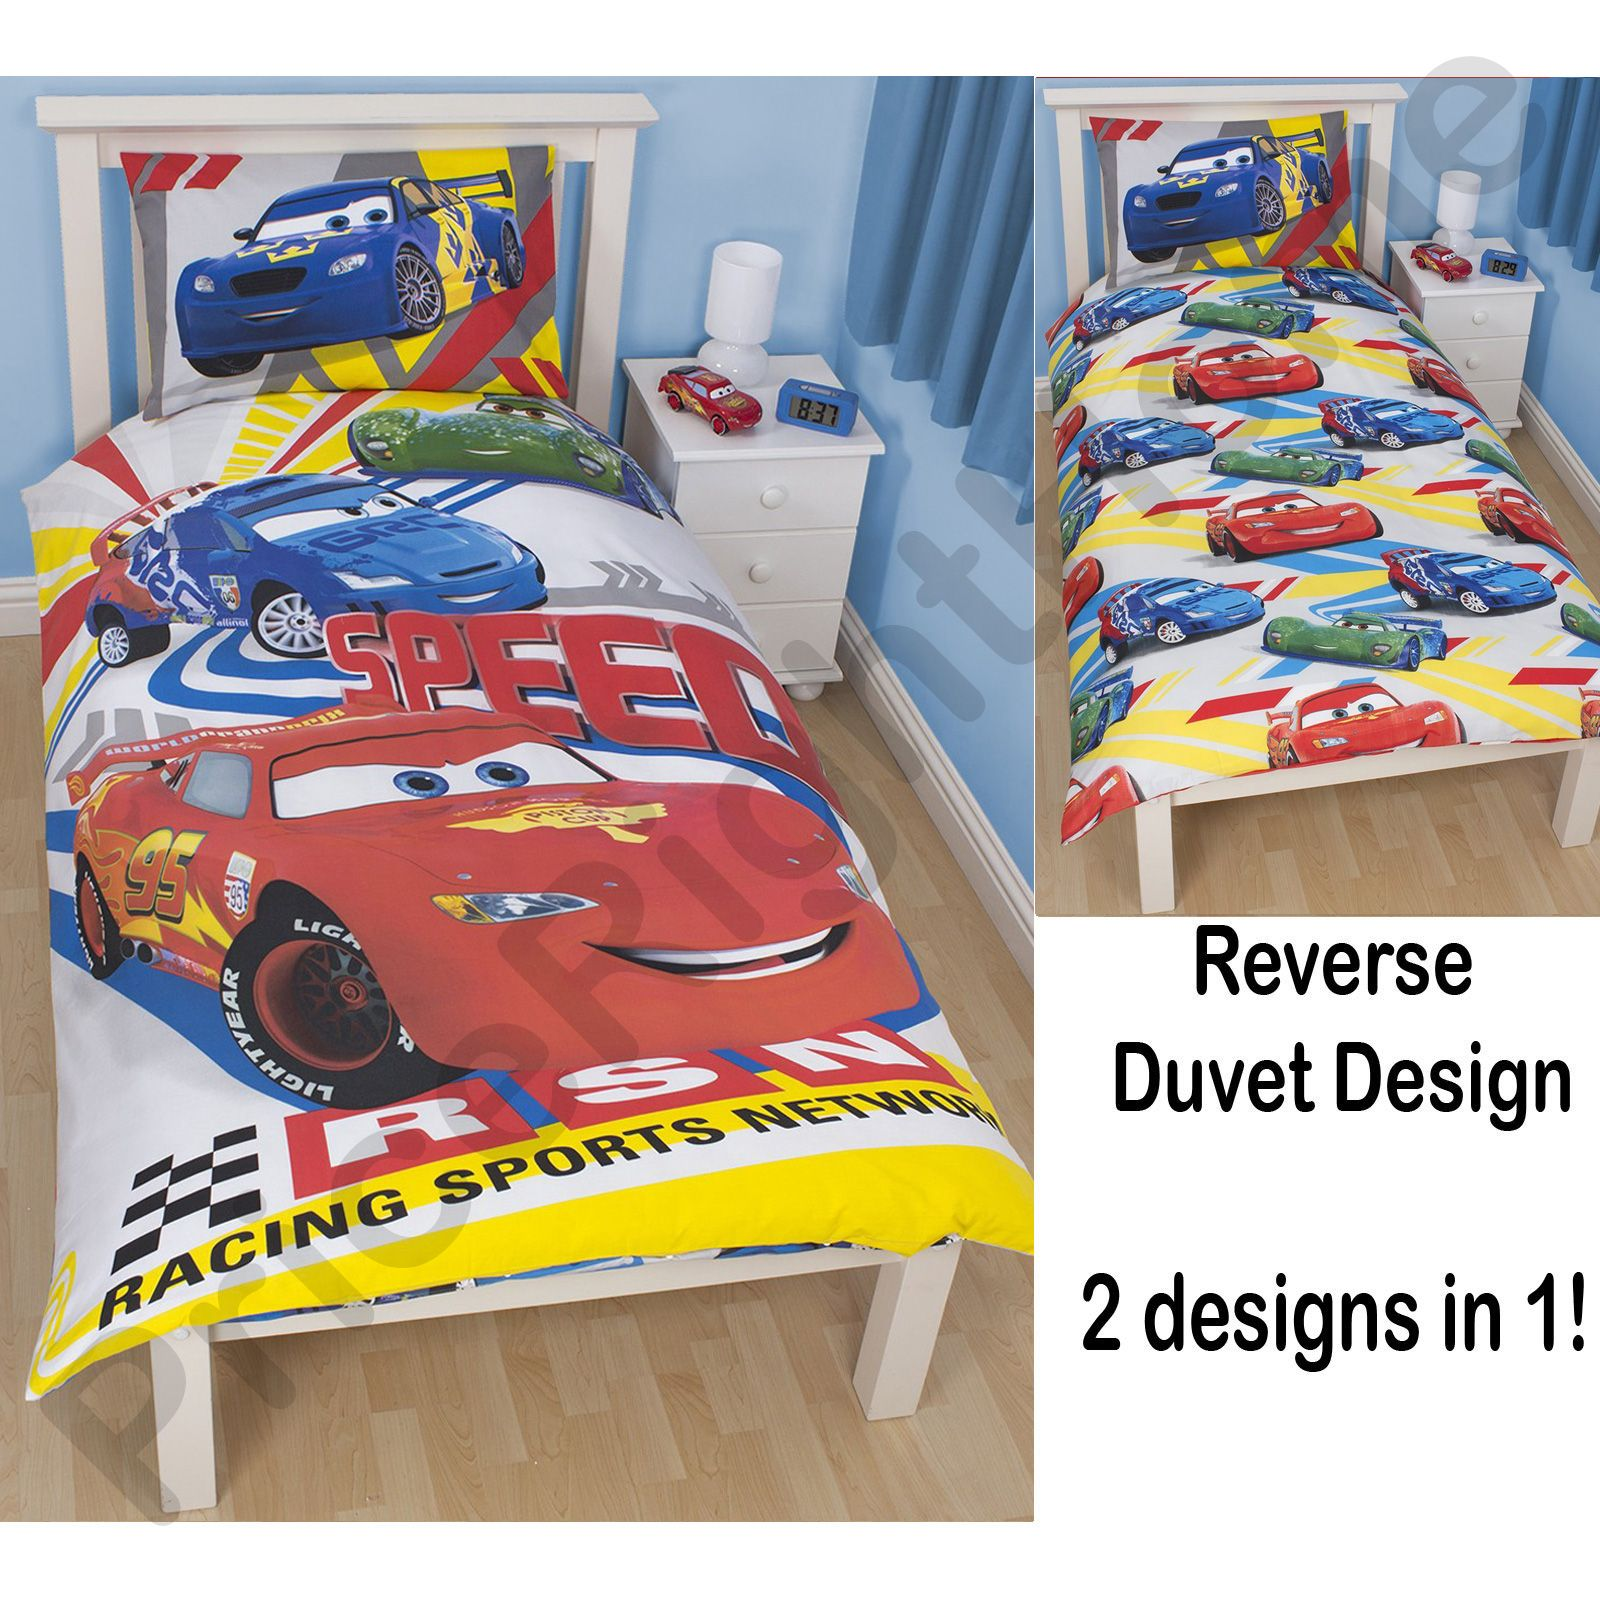 disney cars chambre coucher parure de lit accessoires d coration murale ebay. Black Bedroom Furniture Sets. Home Design Ideas